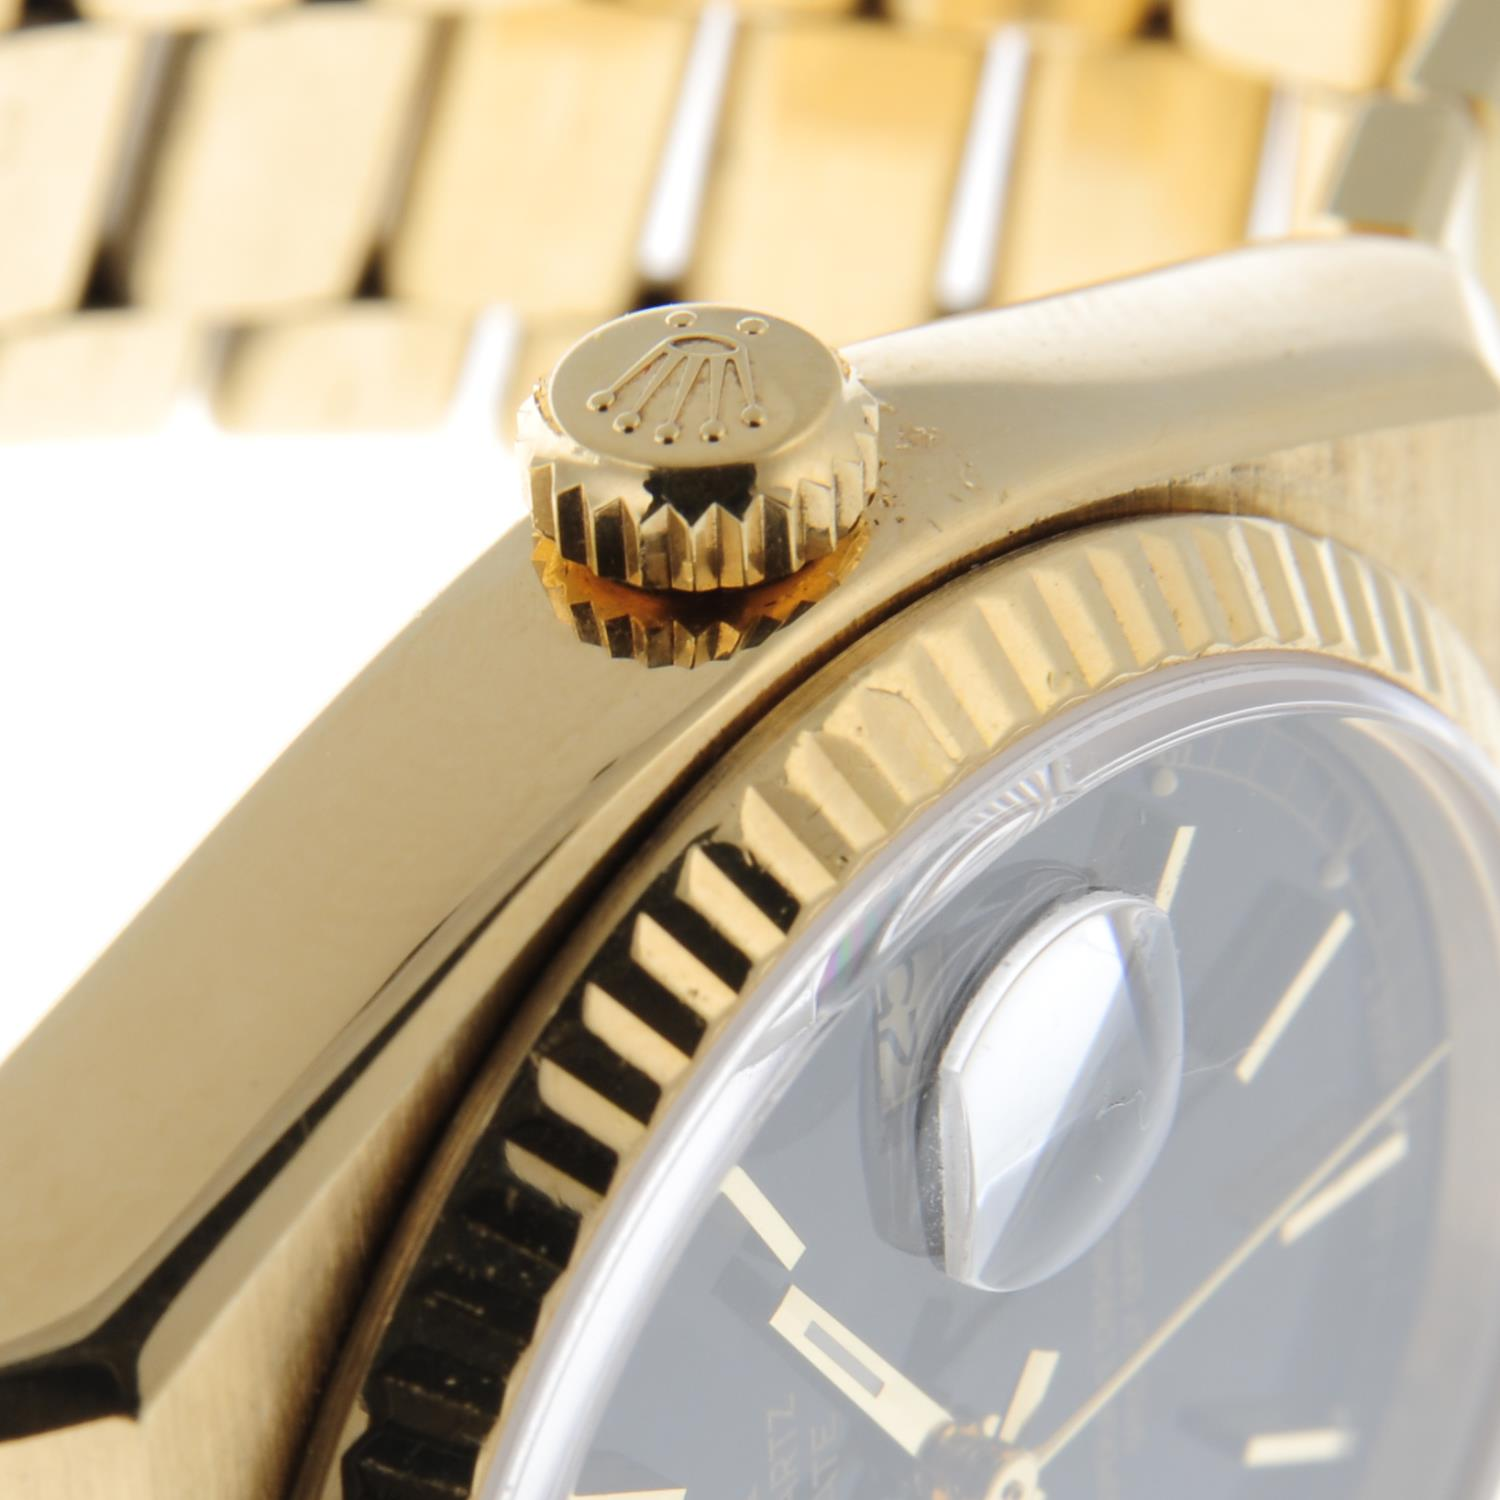 ROLEX - an Oysterquartz Day-Date bracelet watch. - Image 5 of 5